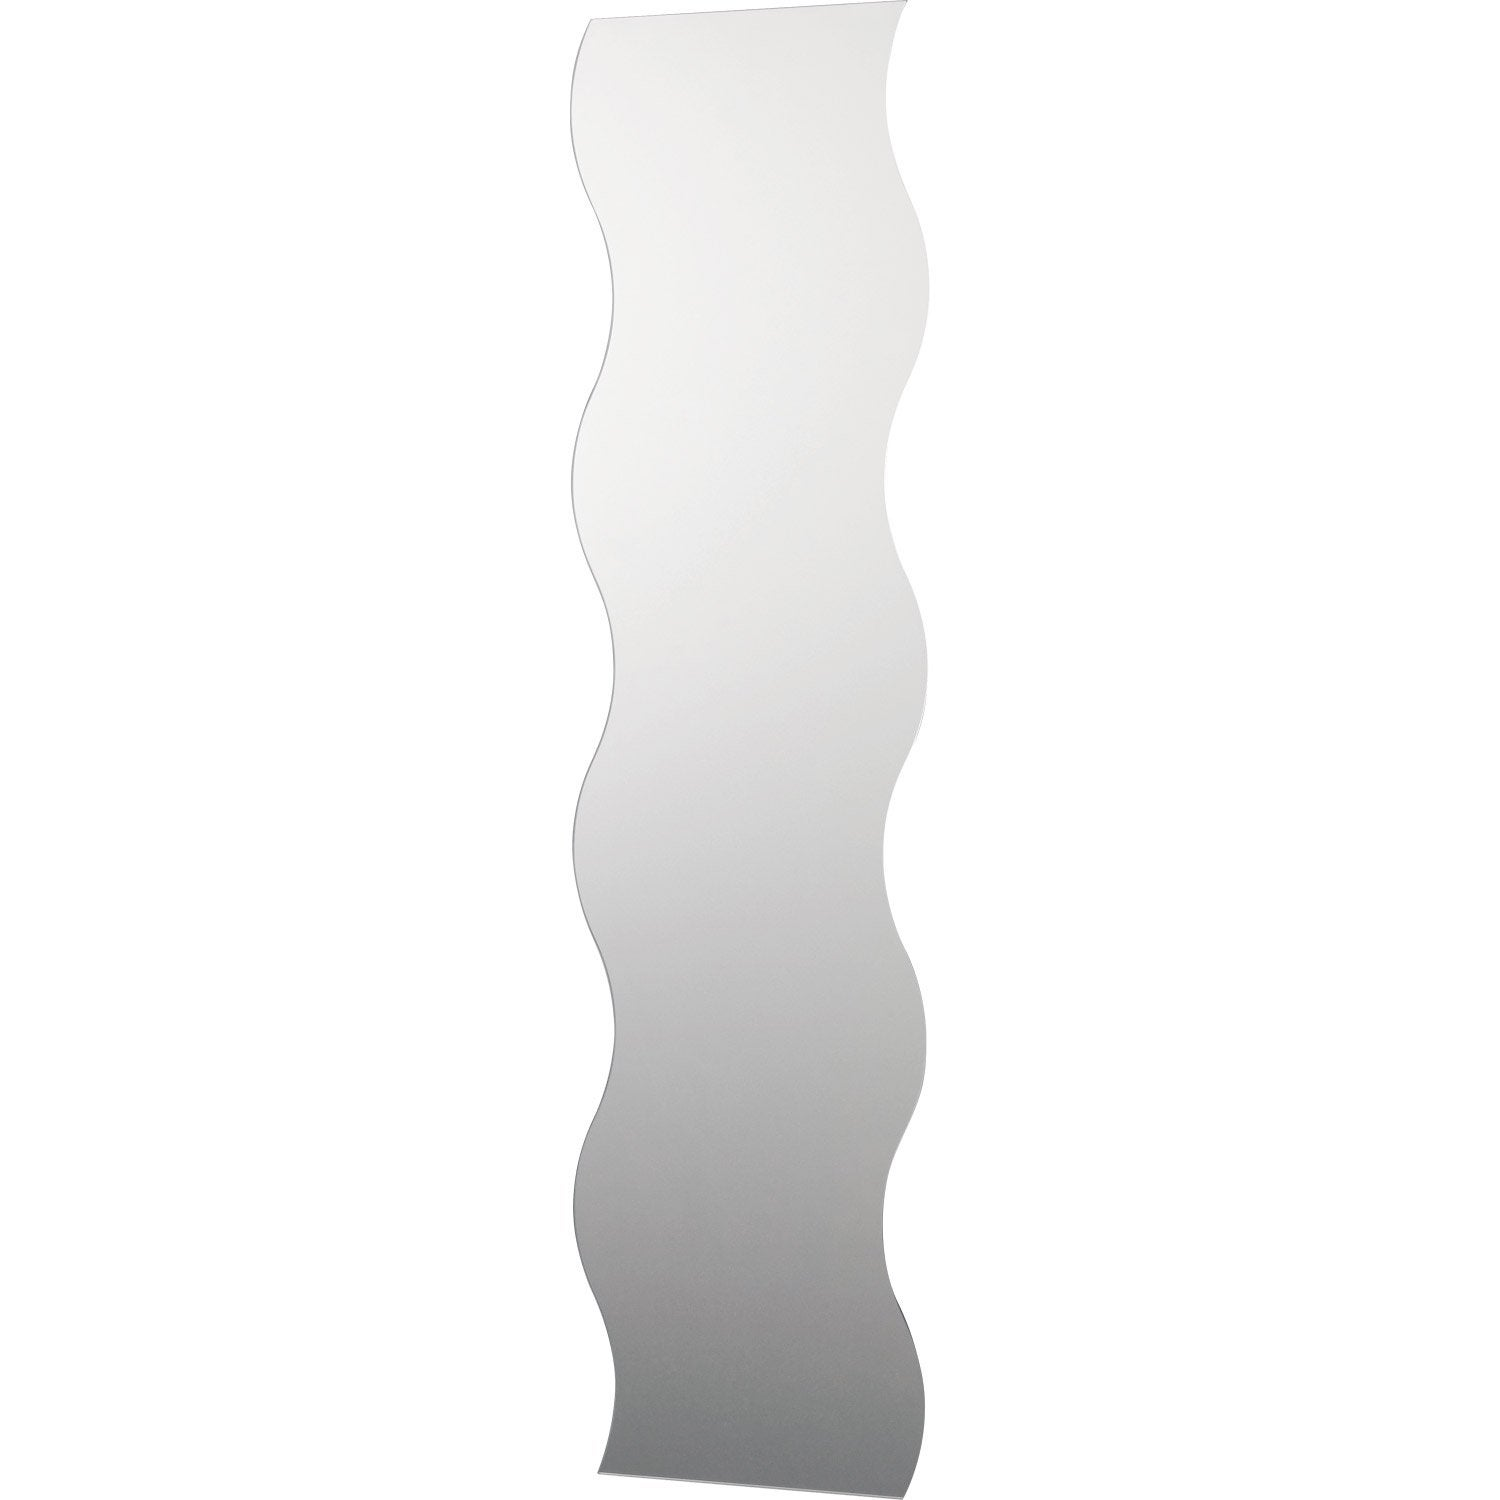 Miroir vague 120 x 30 cm leroy merlin for Miroir decoratif leroy merlin